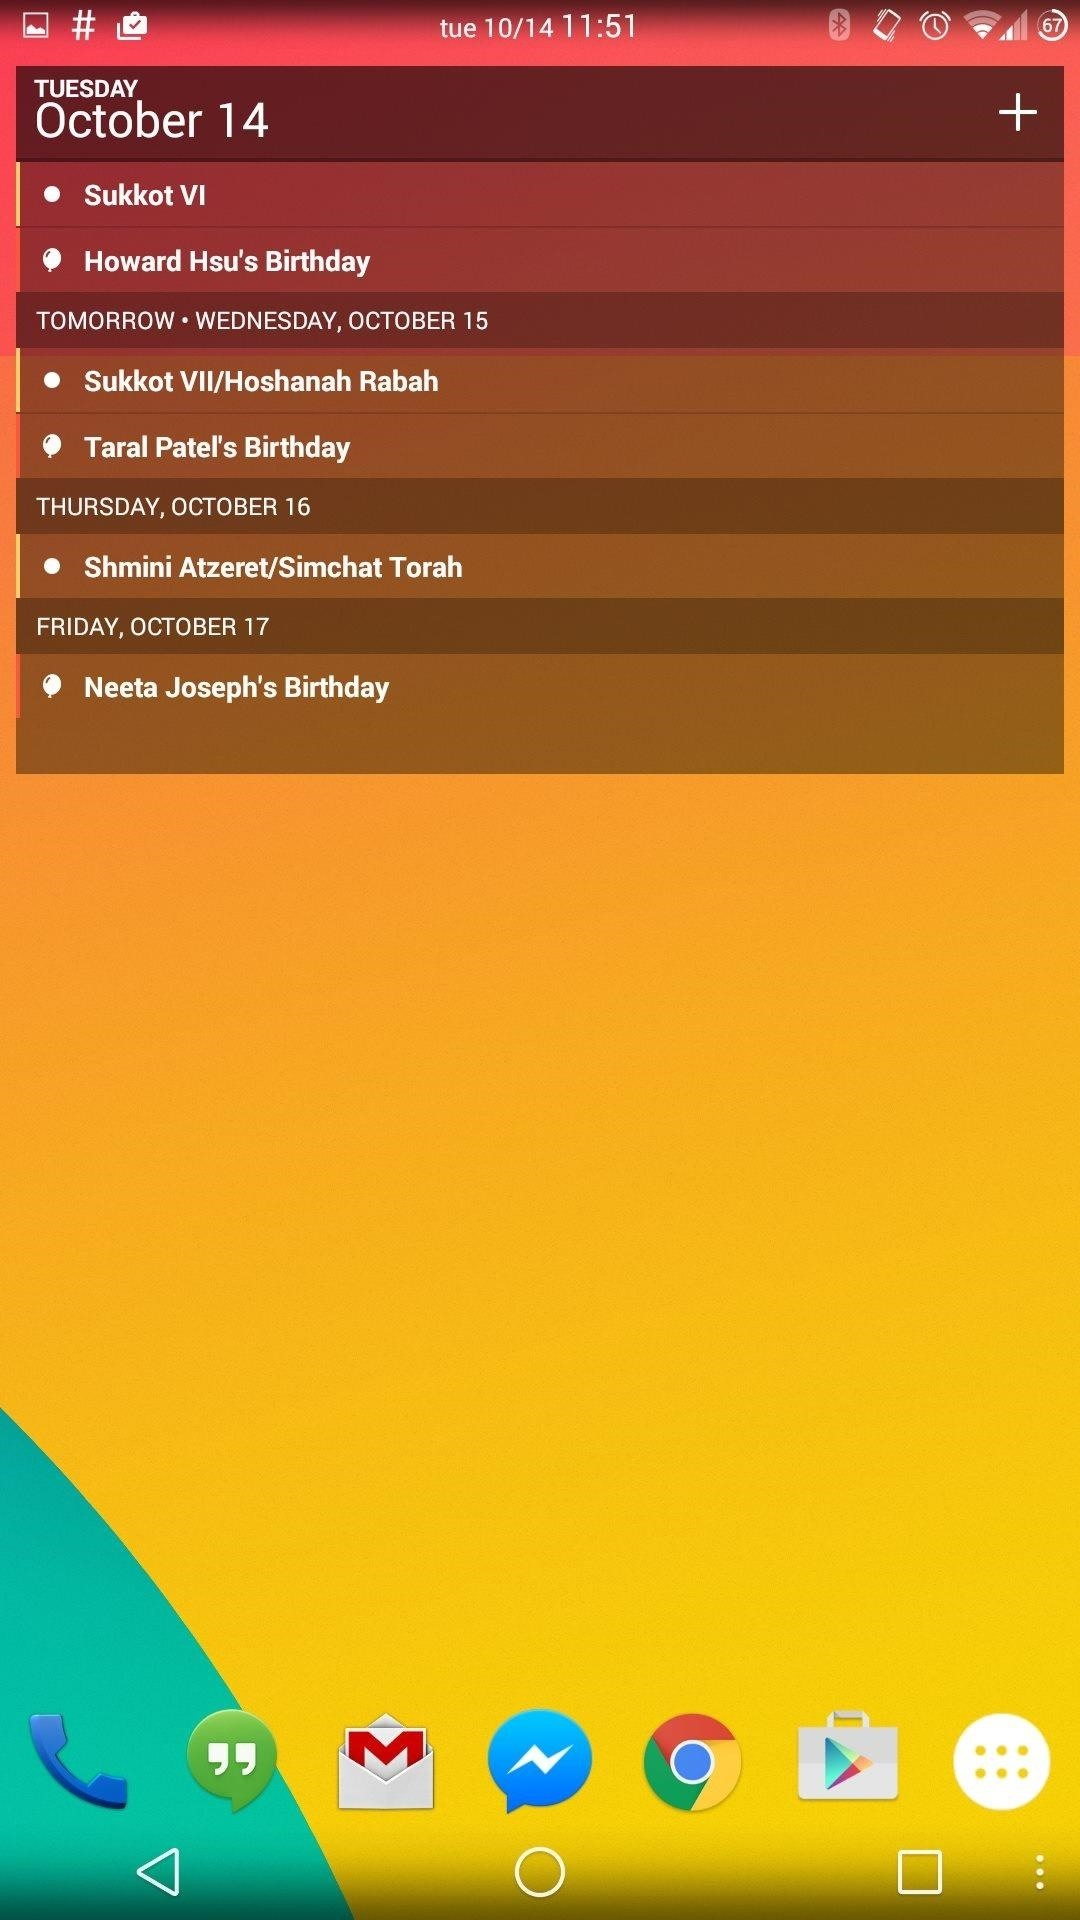 Sunrise Gives Your Android a Hybrid Agenda/Calendar View